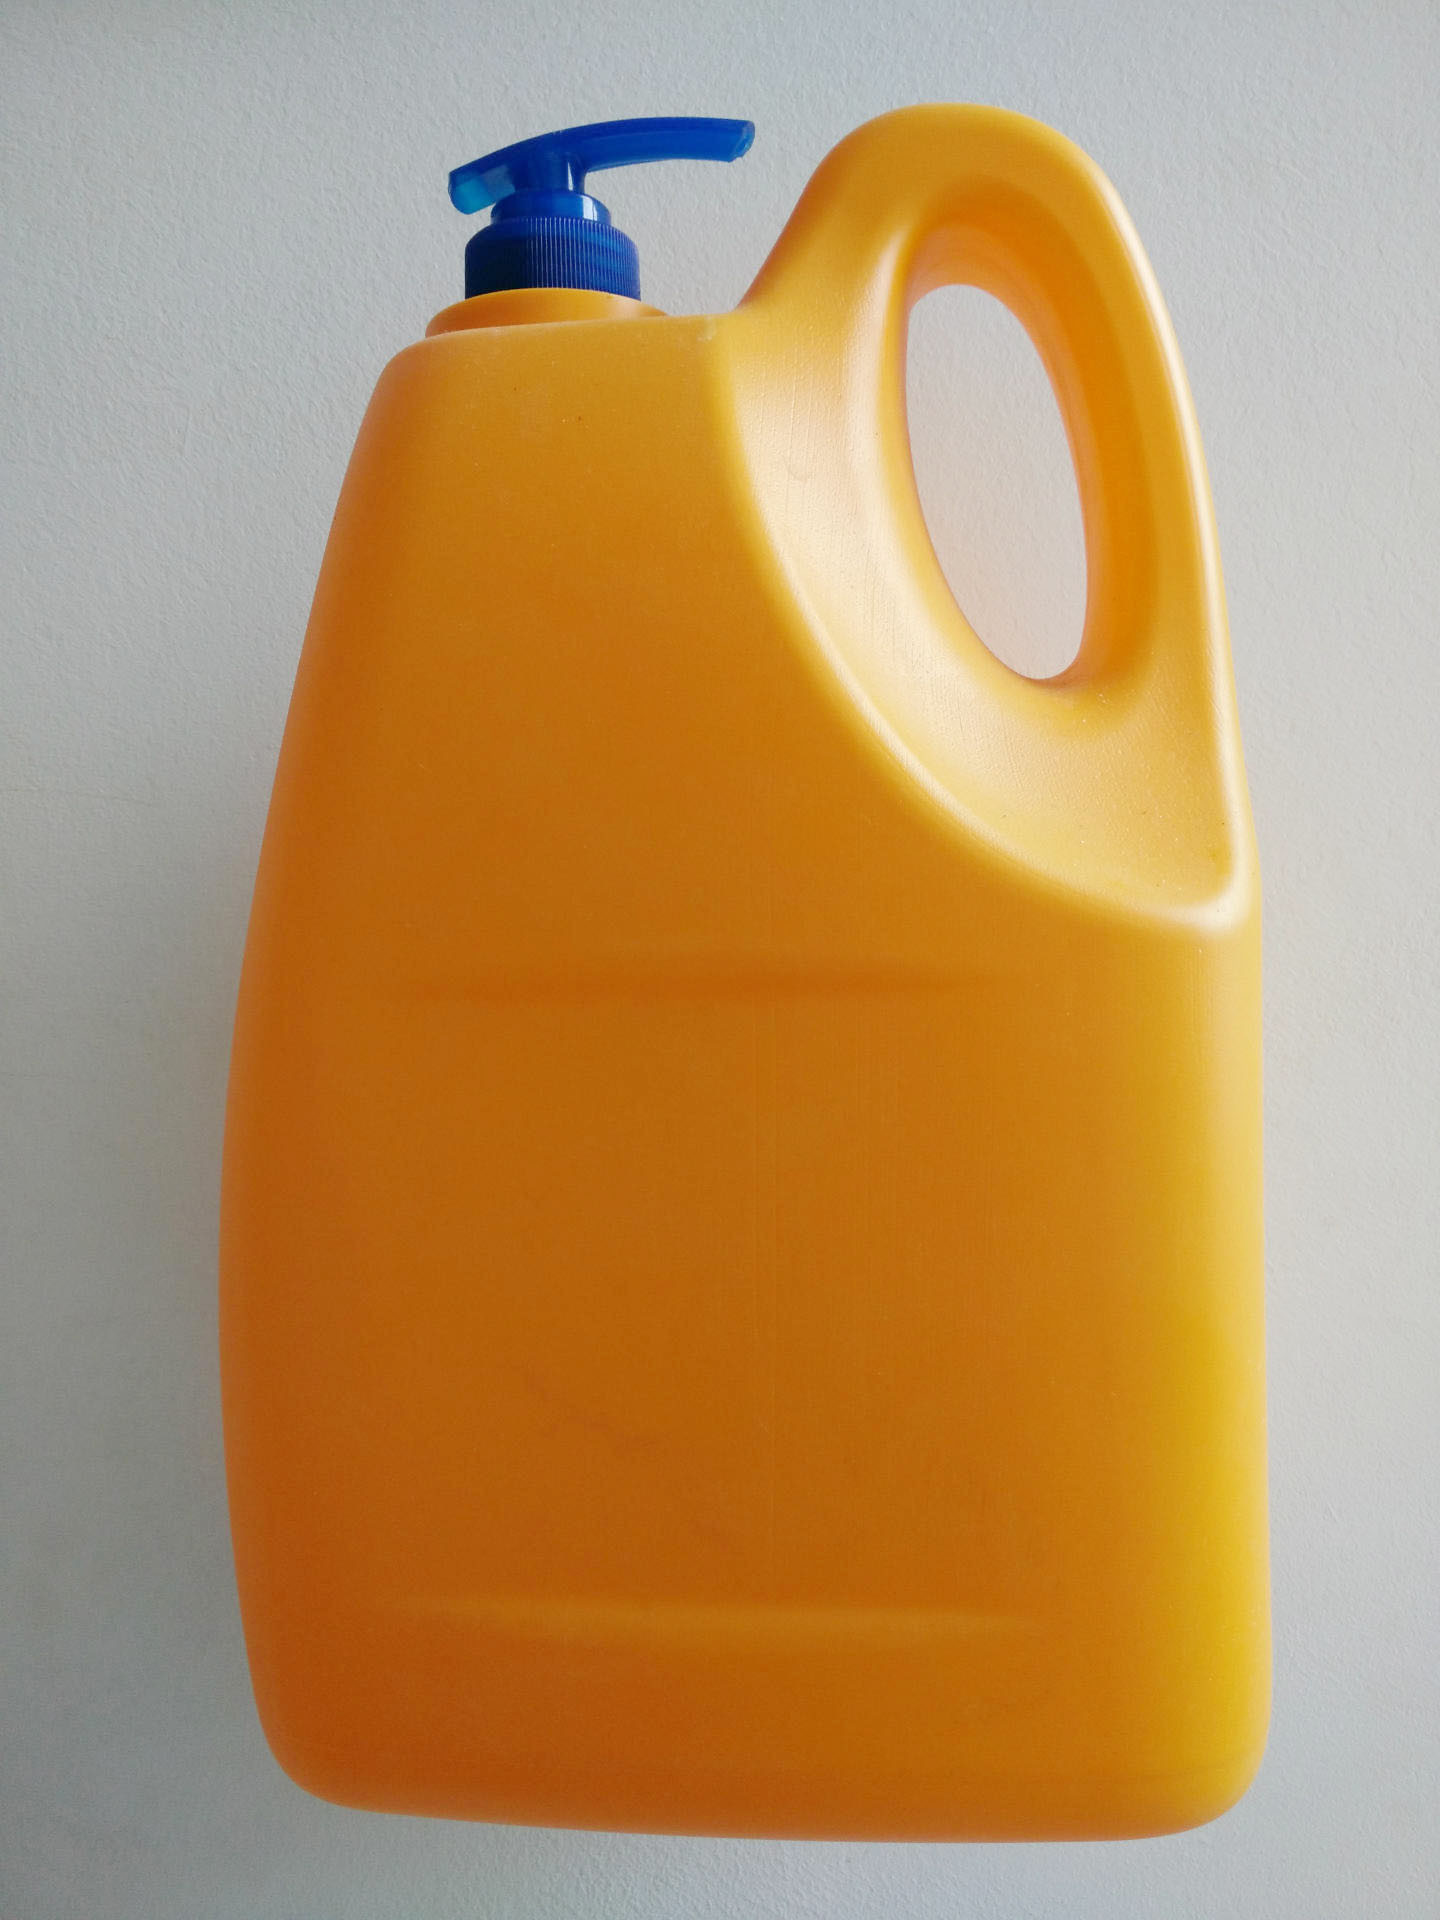 Natural Micro Wave and Fridge Cleaner Concentrated Liquid Detergent